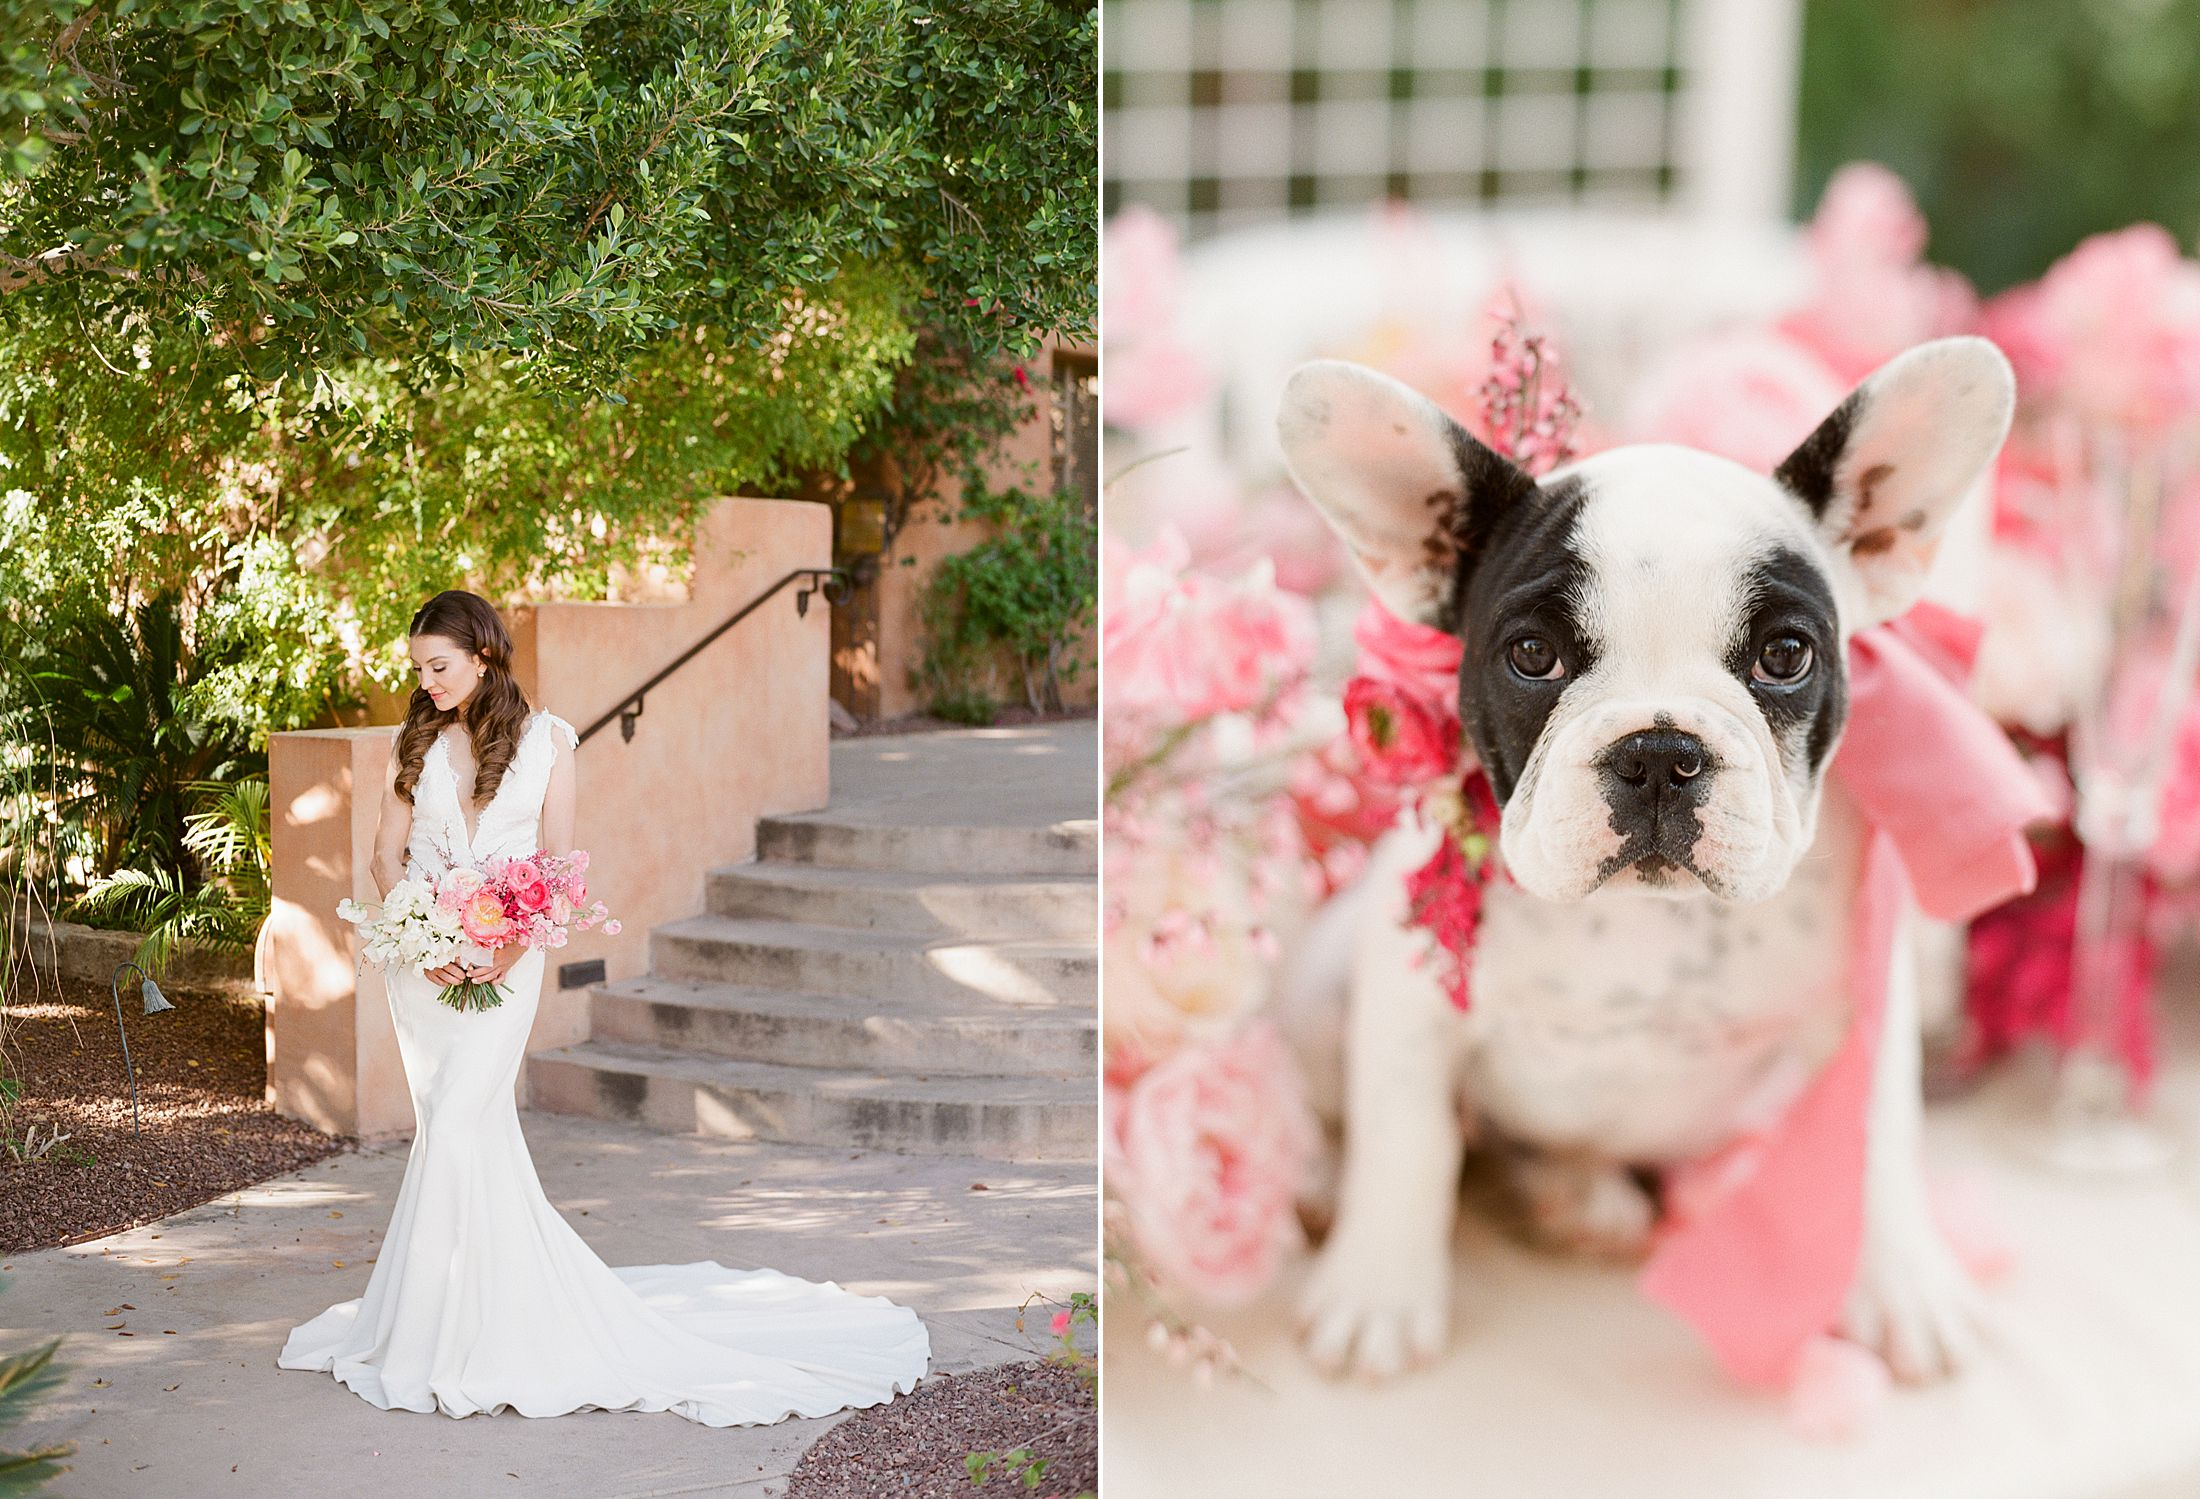 Pink Ombre Wedding Inspiration on Style Me Pretty - Royal Palms Wedding - Scottsdale Wedding - Ashley Baumgartner - Bloom and Blueprint - Wedding Puppies - Bulldog Puppies_0026.jpg